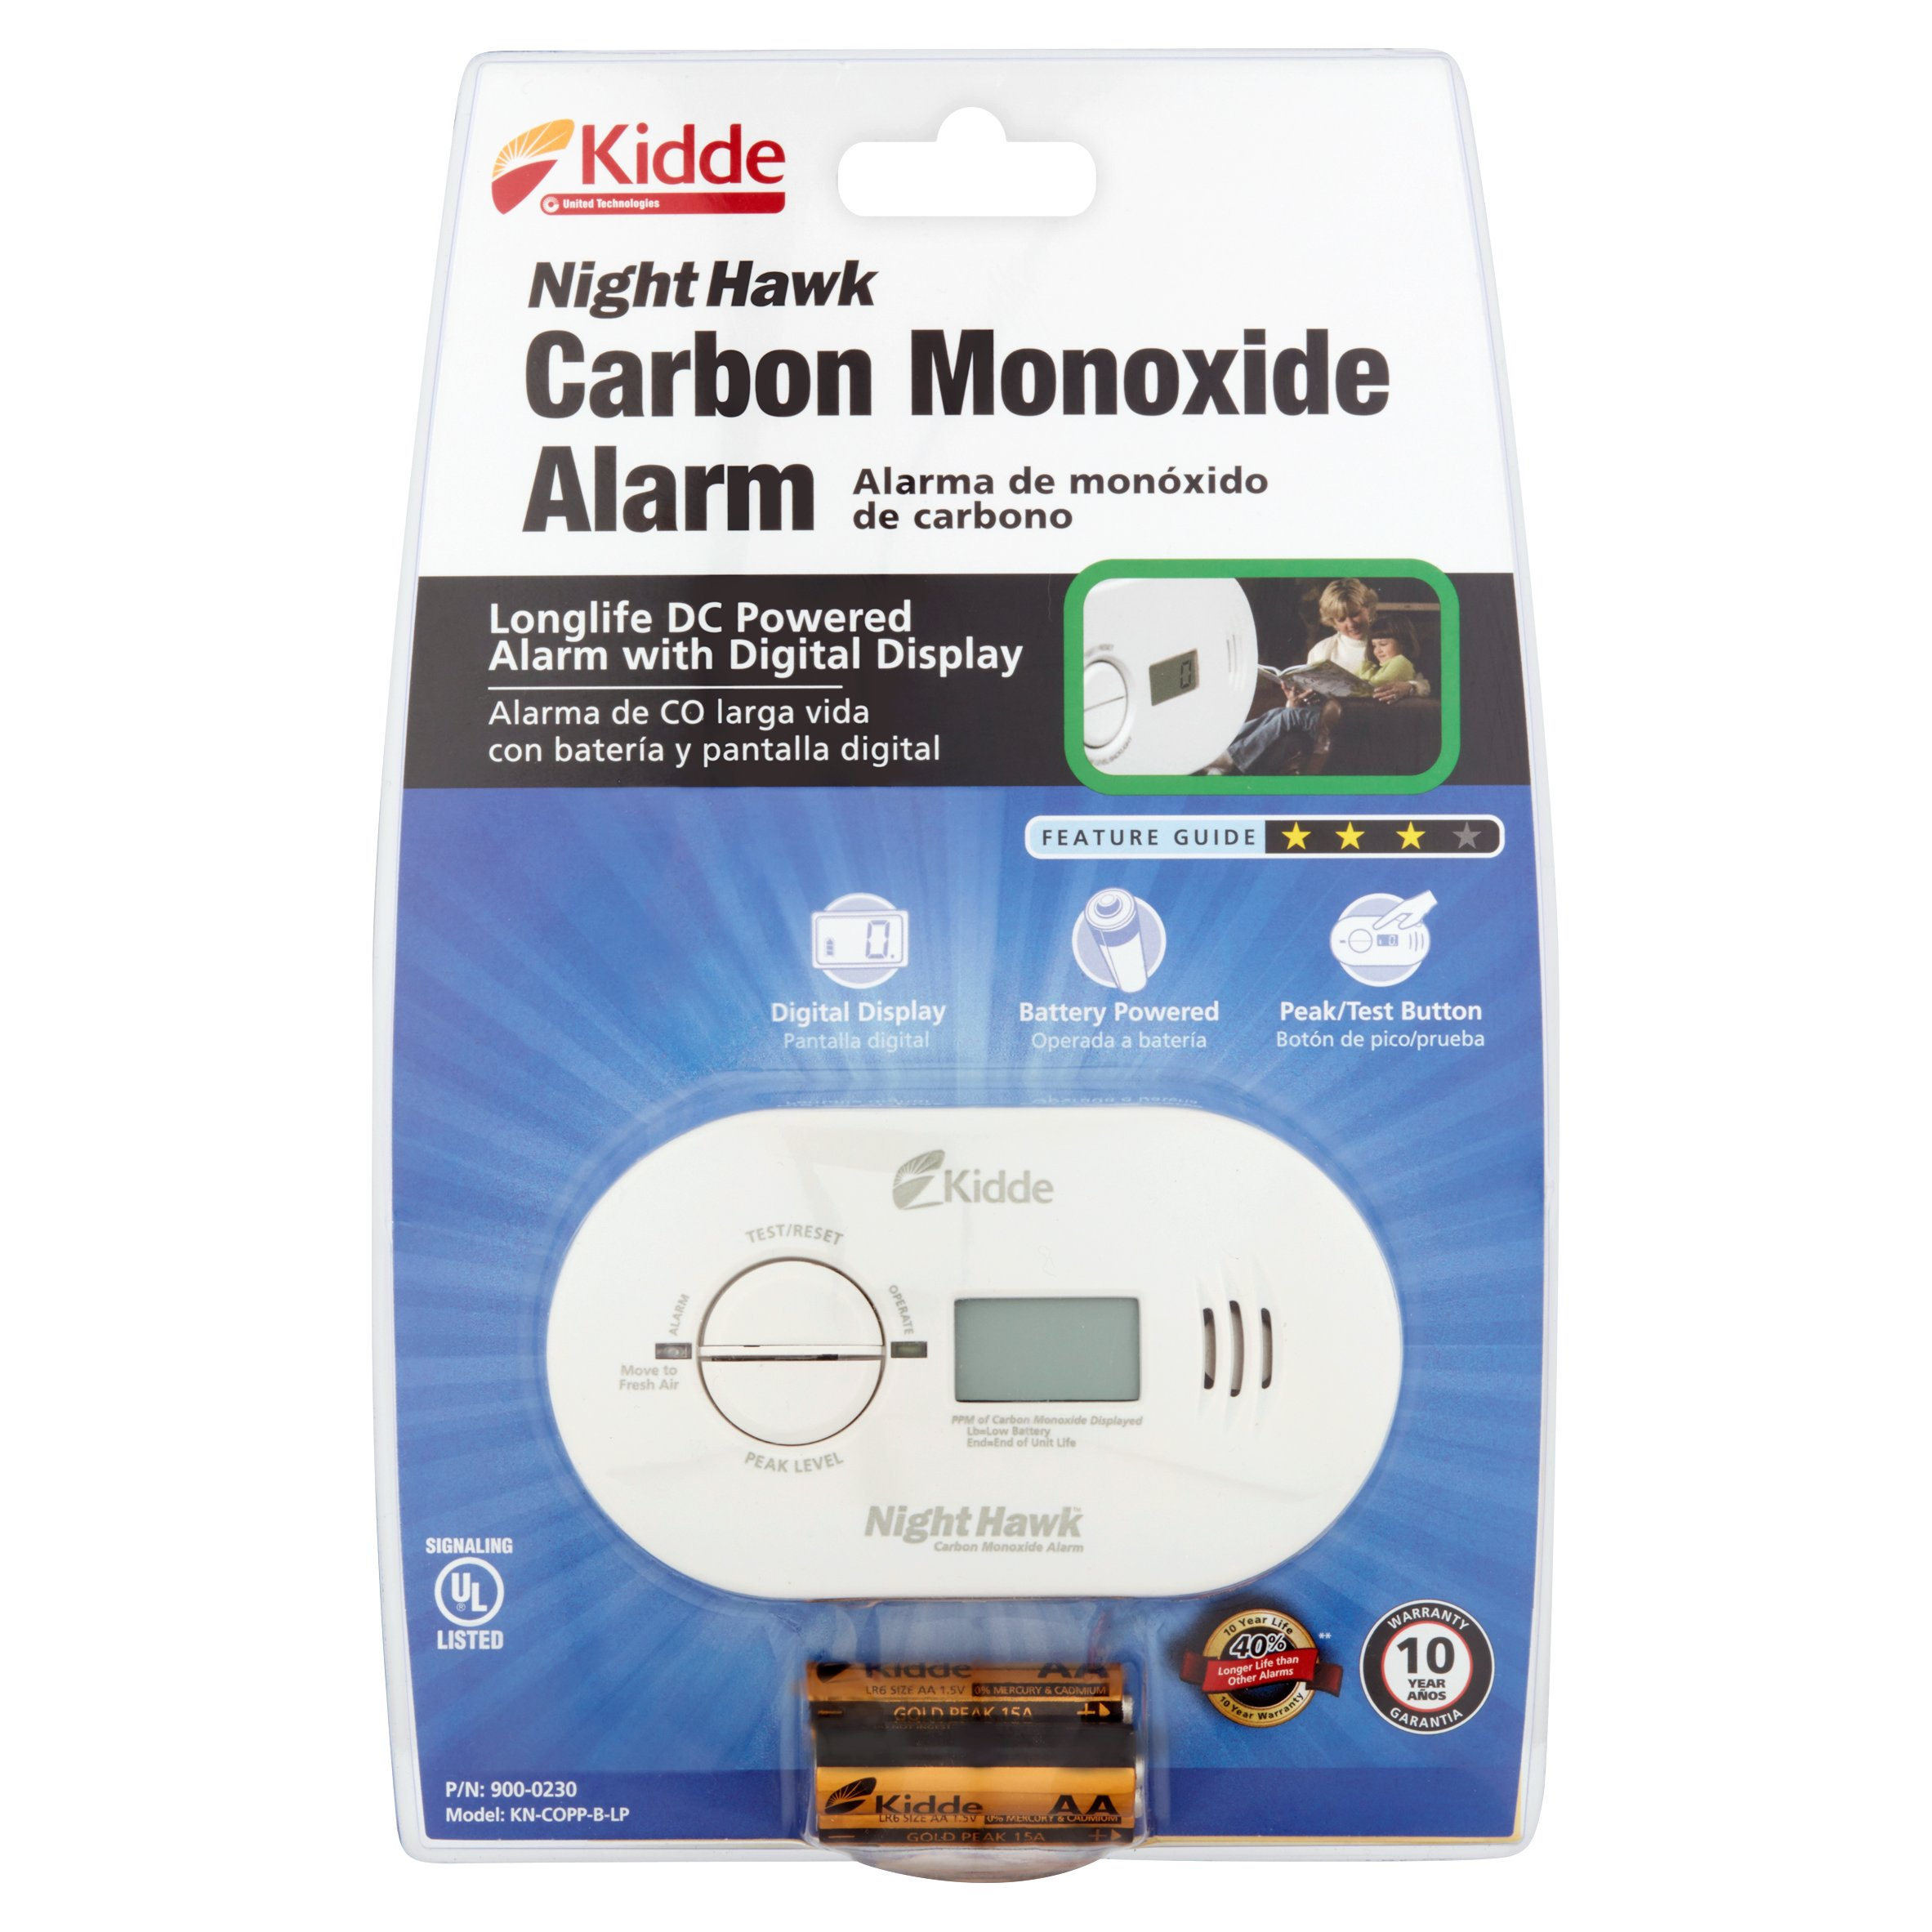 Kidde Nighthawk CO Detector KN-COPP-B-LP by KIDDE